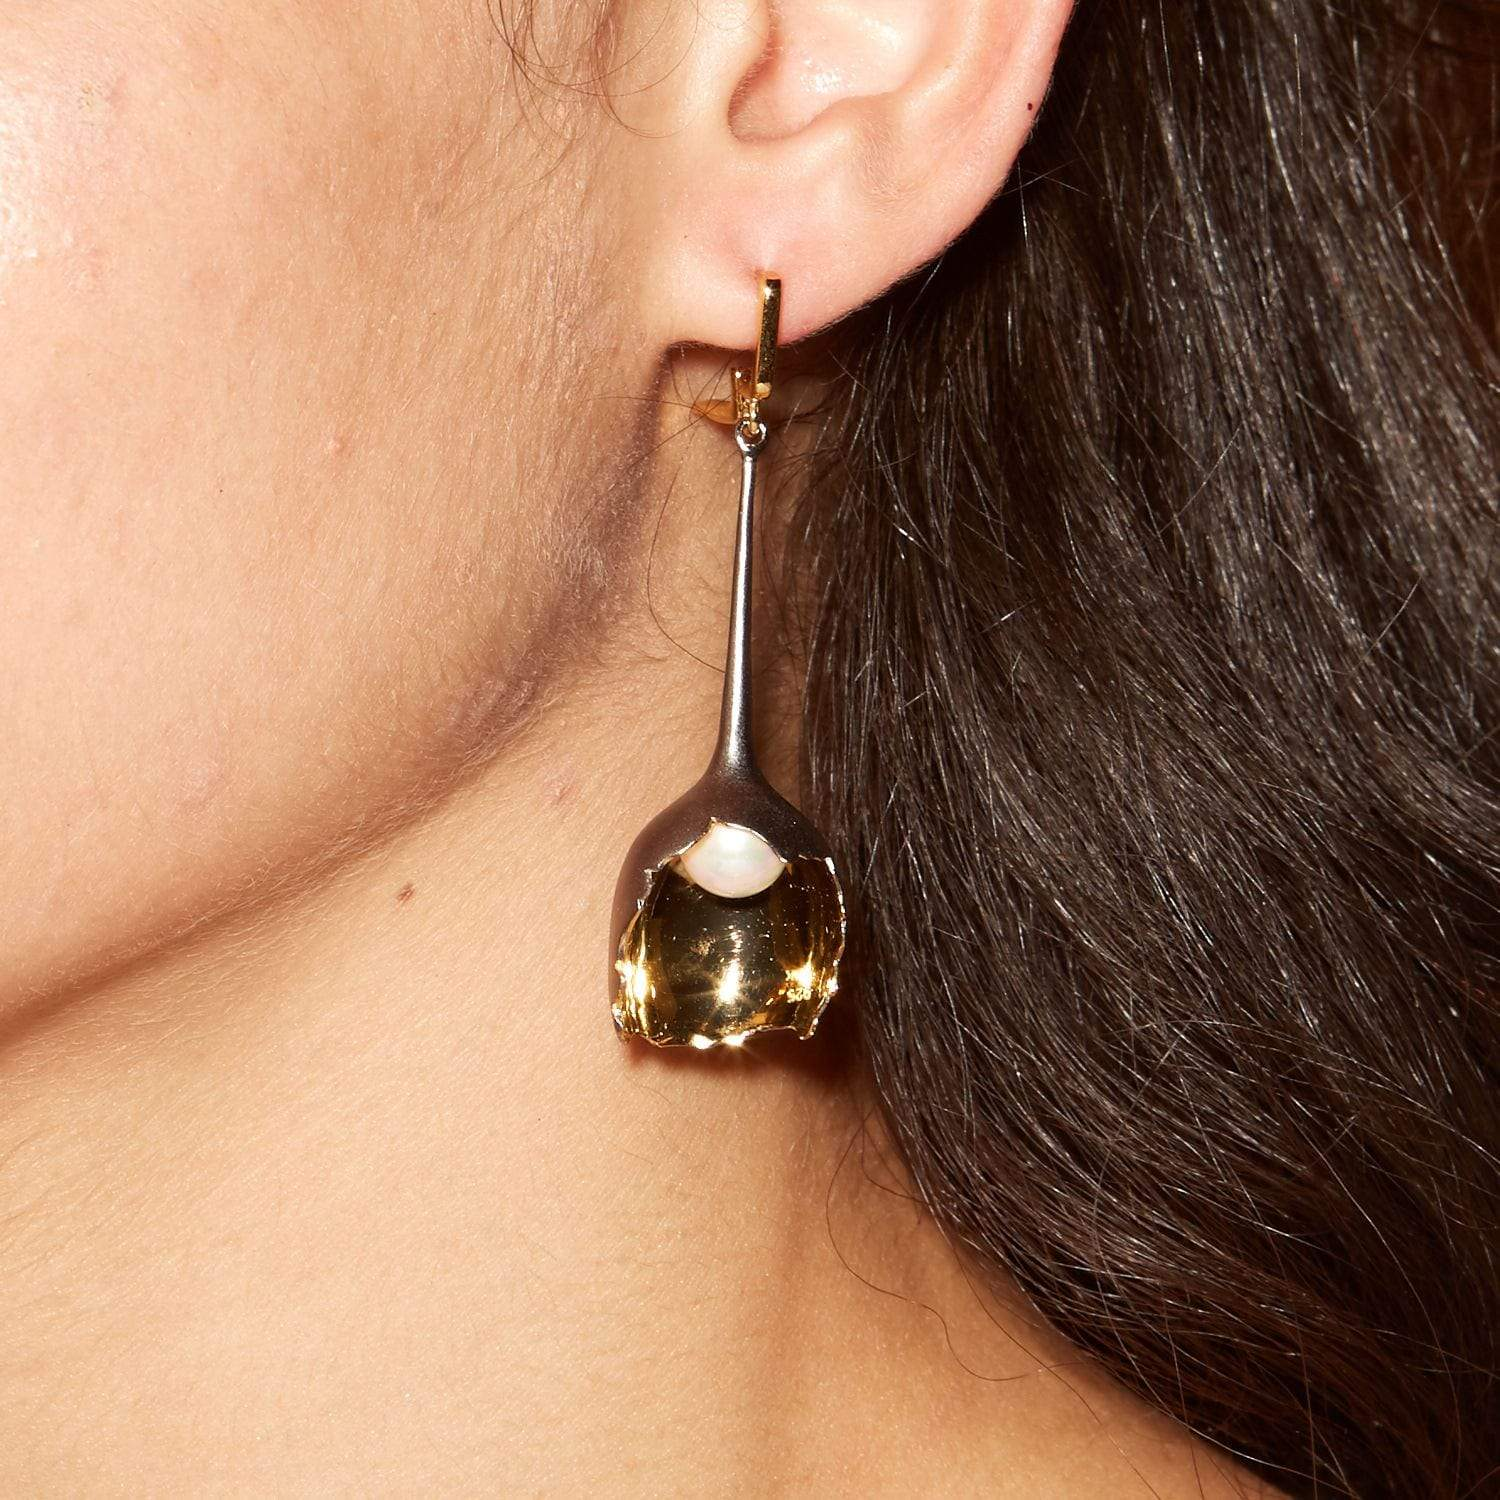 Florana Earrings, Gold, gray, Pearl, Rhodium, Serial, spo-disabled, StoneColor:White Earrings